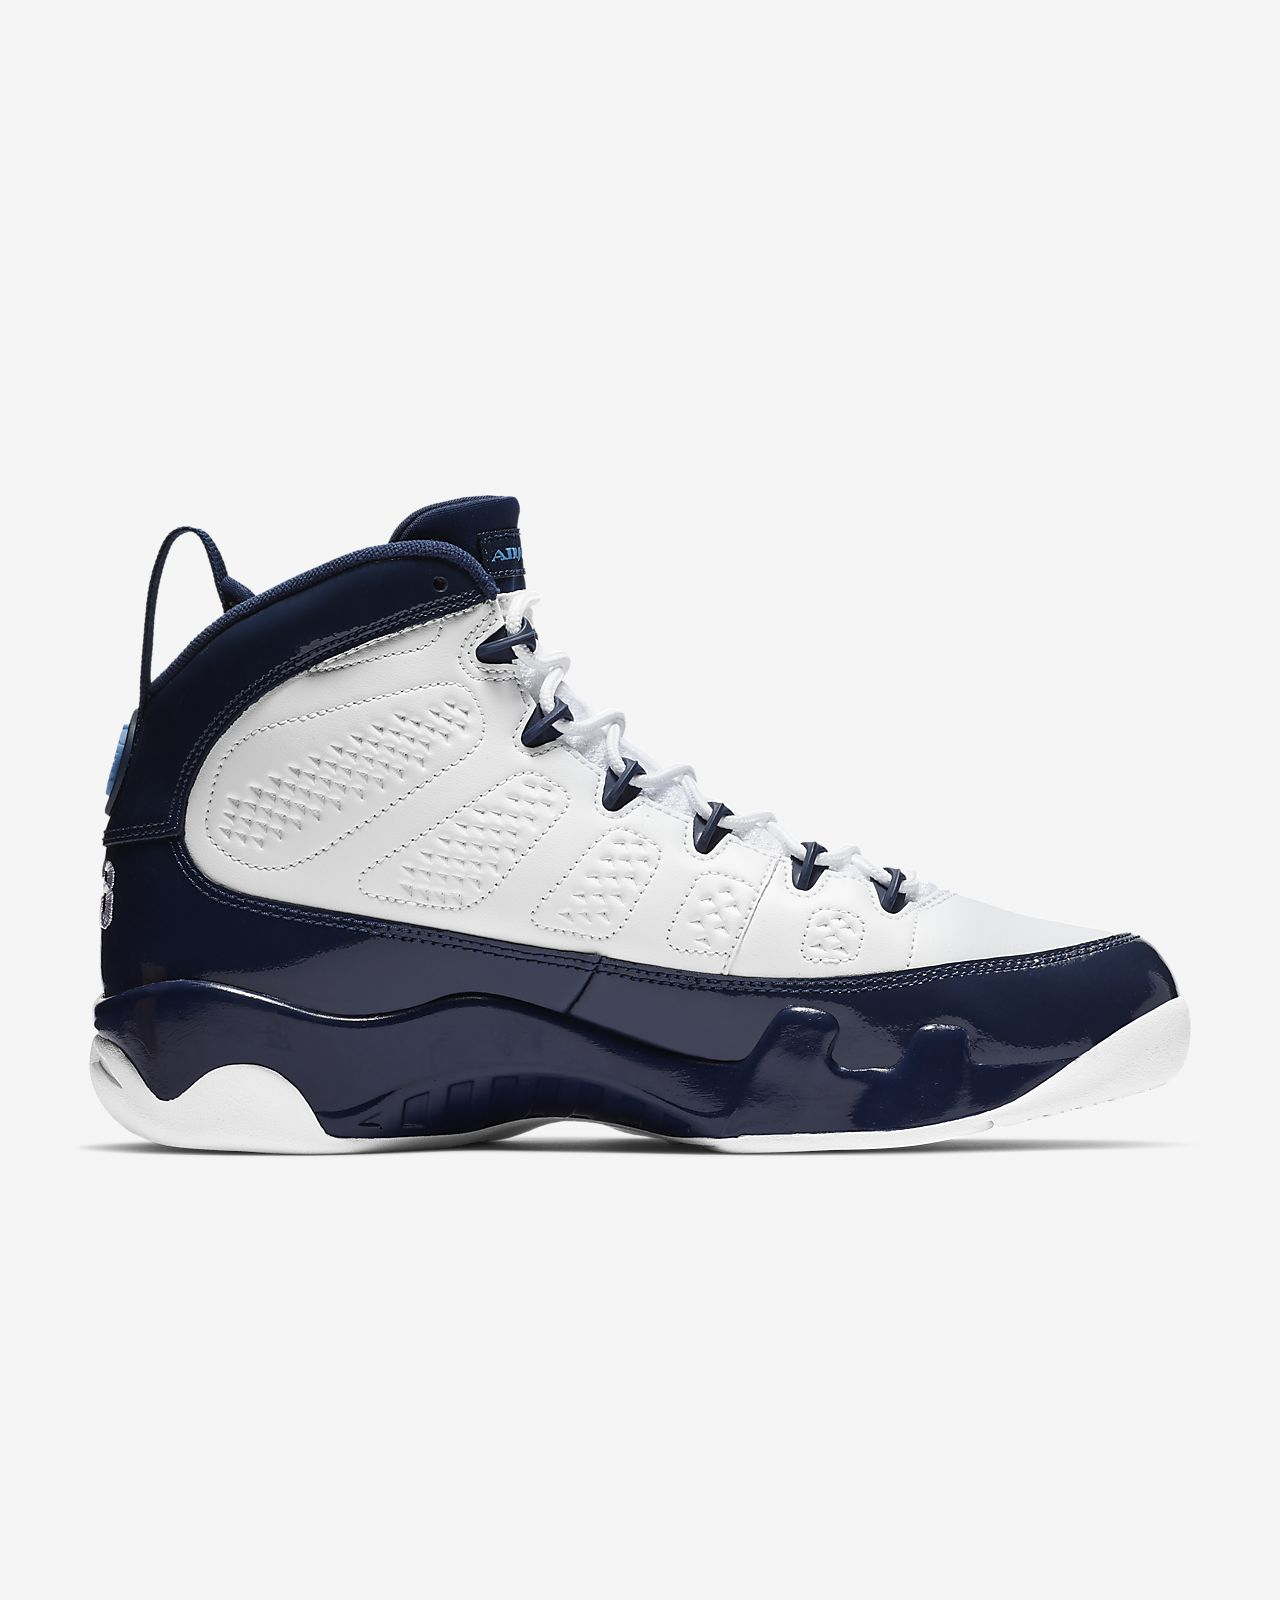 81f3ffd3694db8 Air Jordan 9 Retro Men s Shoe. Nike.com